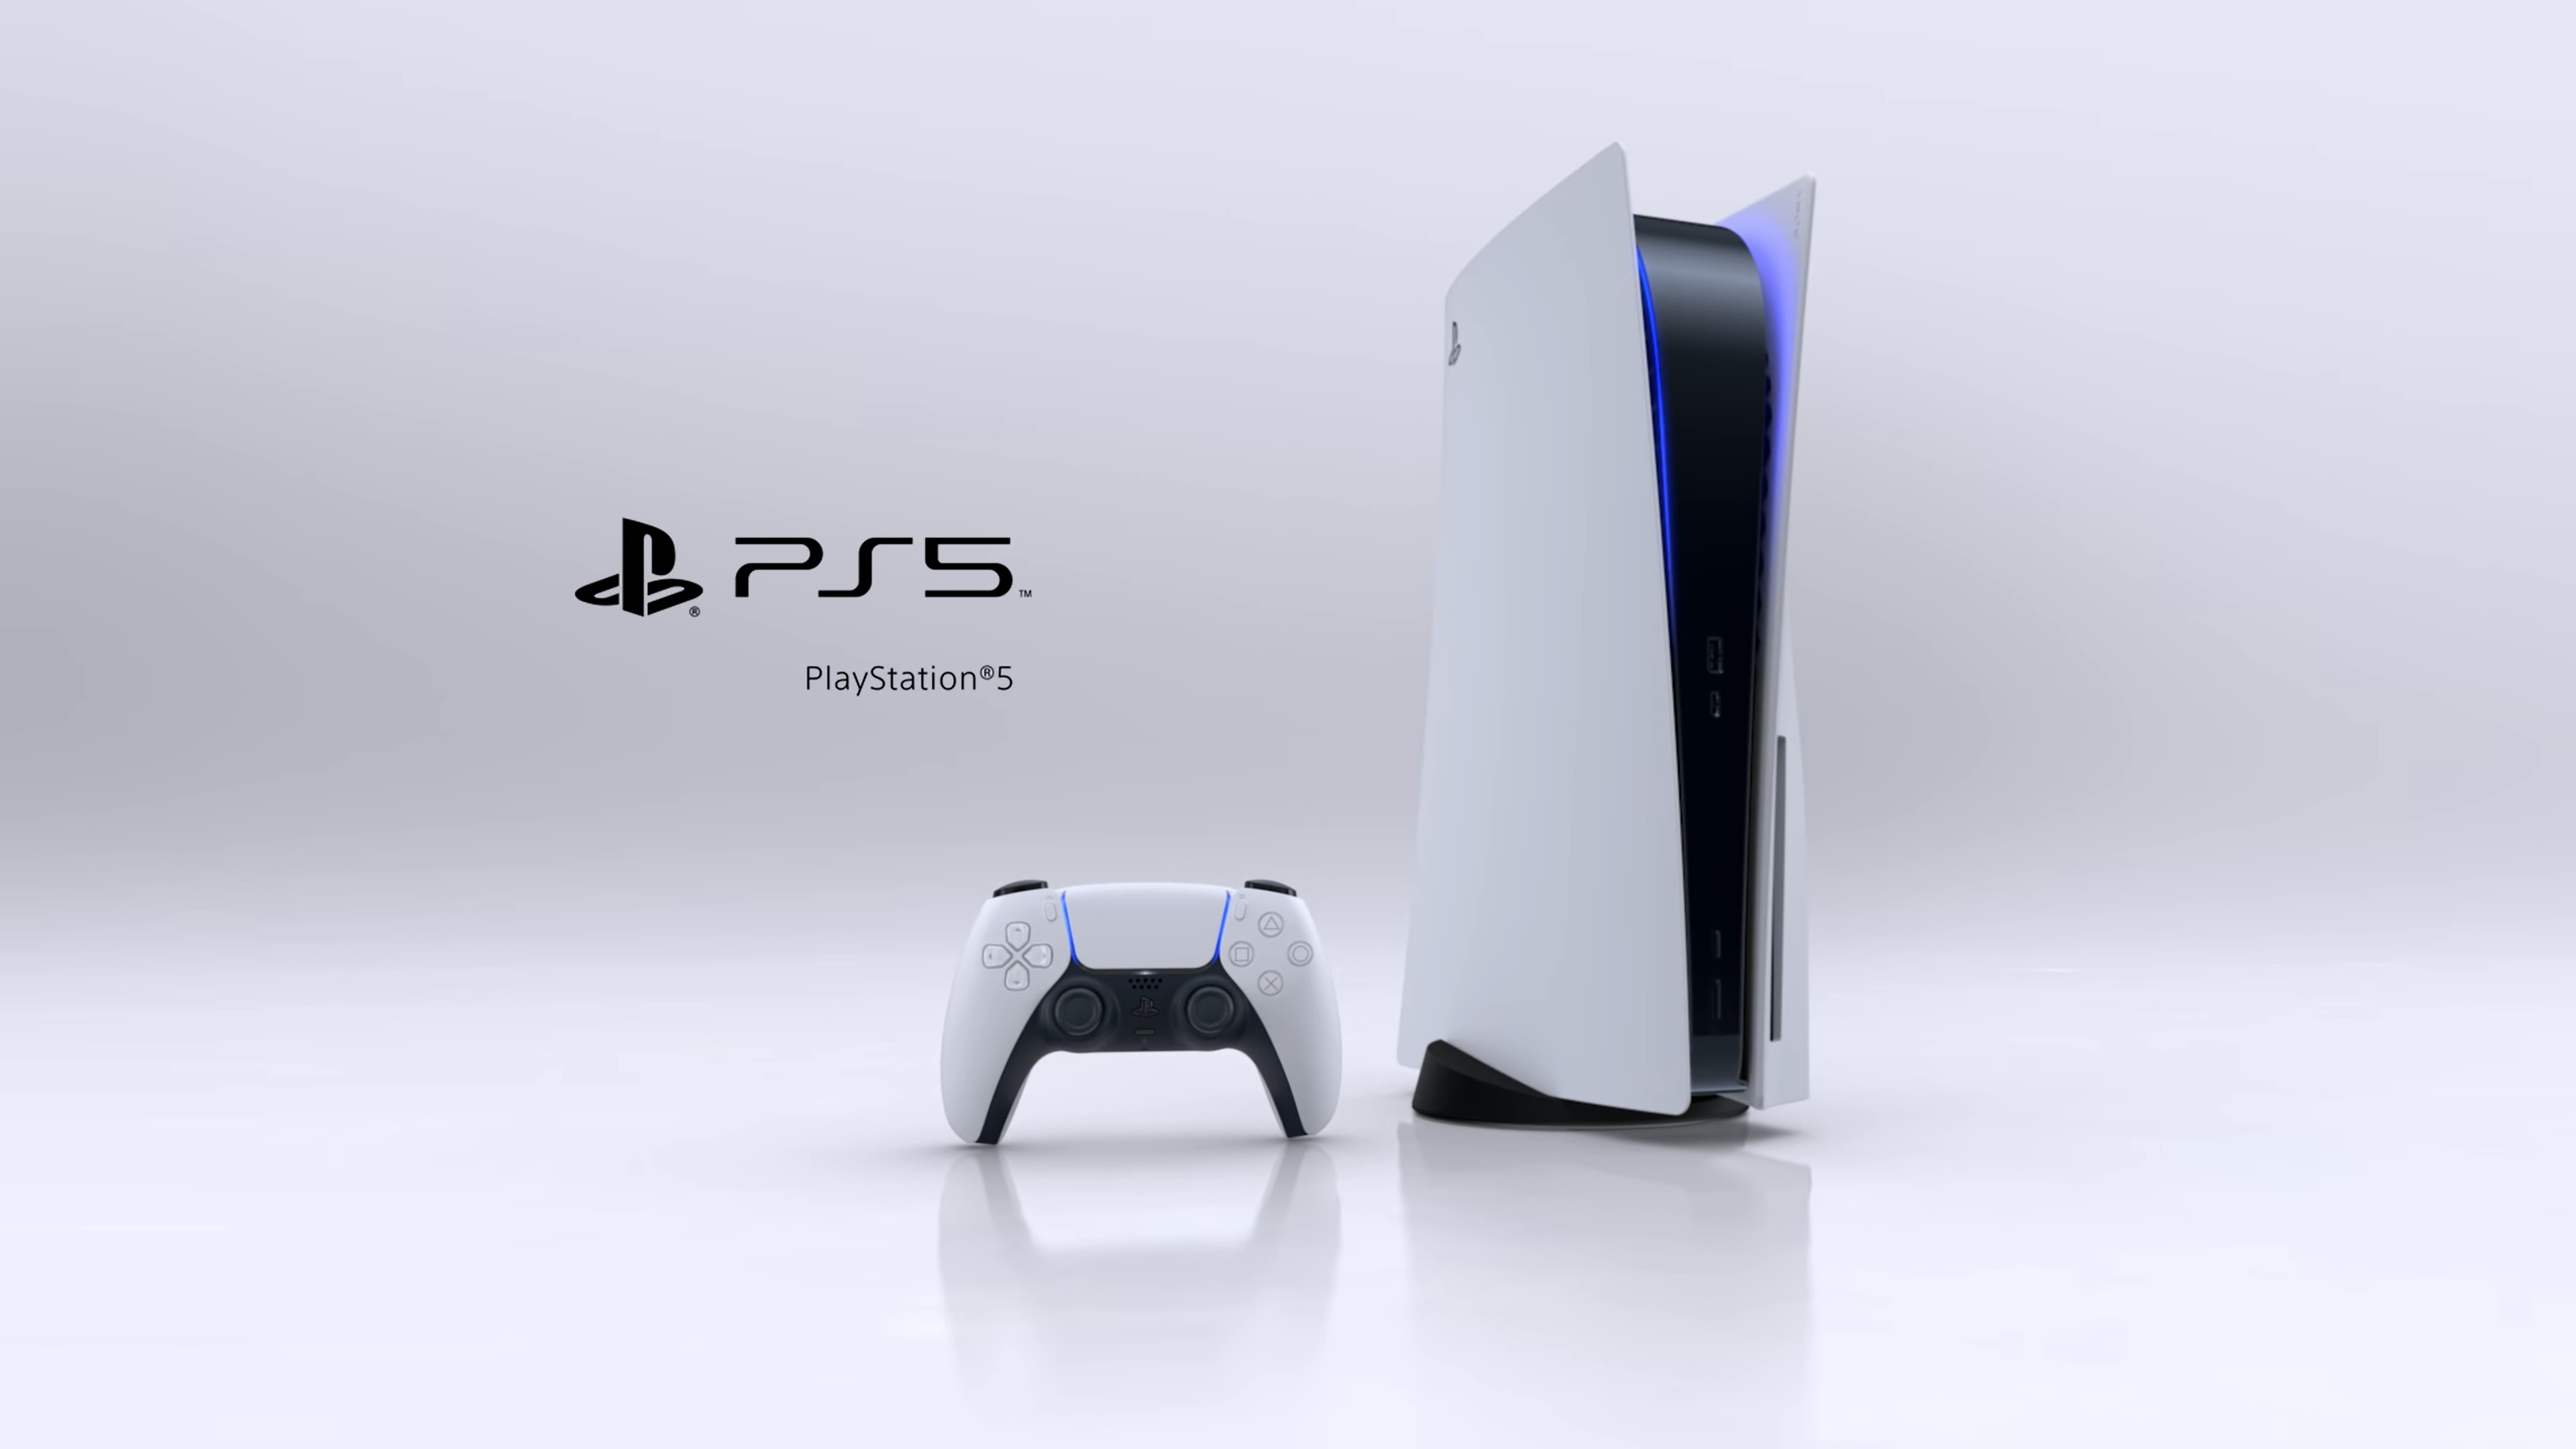 Ps5 Wallpapers Top Free Ps5 Backgrounds Wallpaperaccess